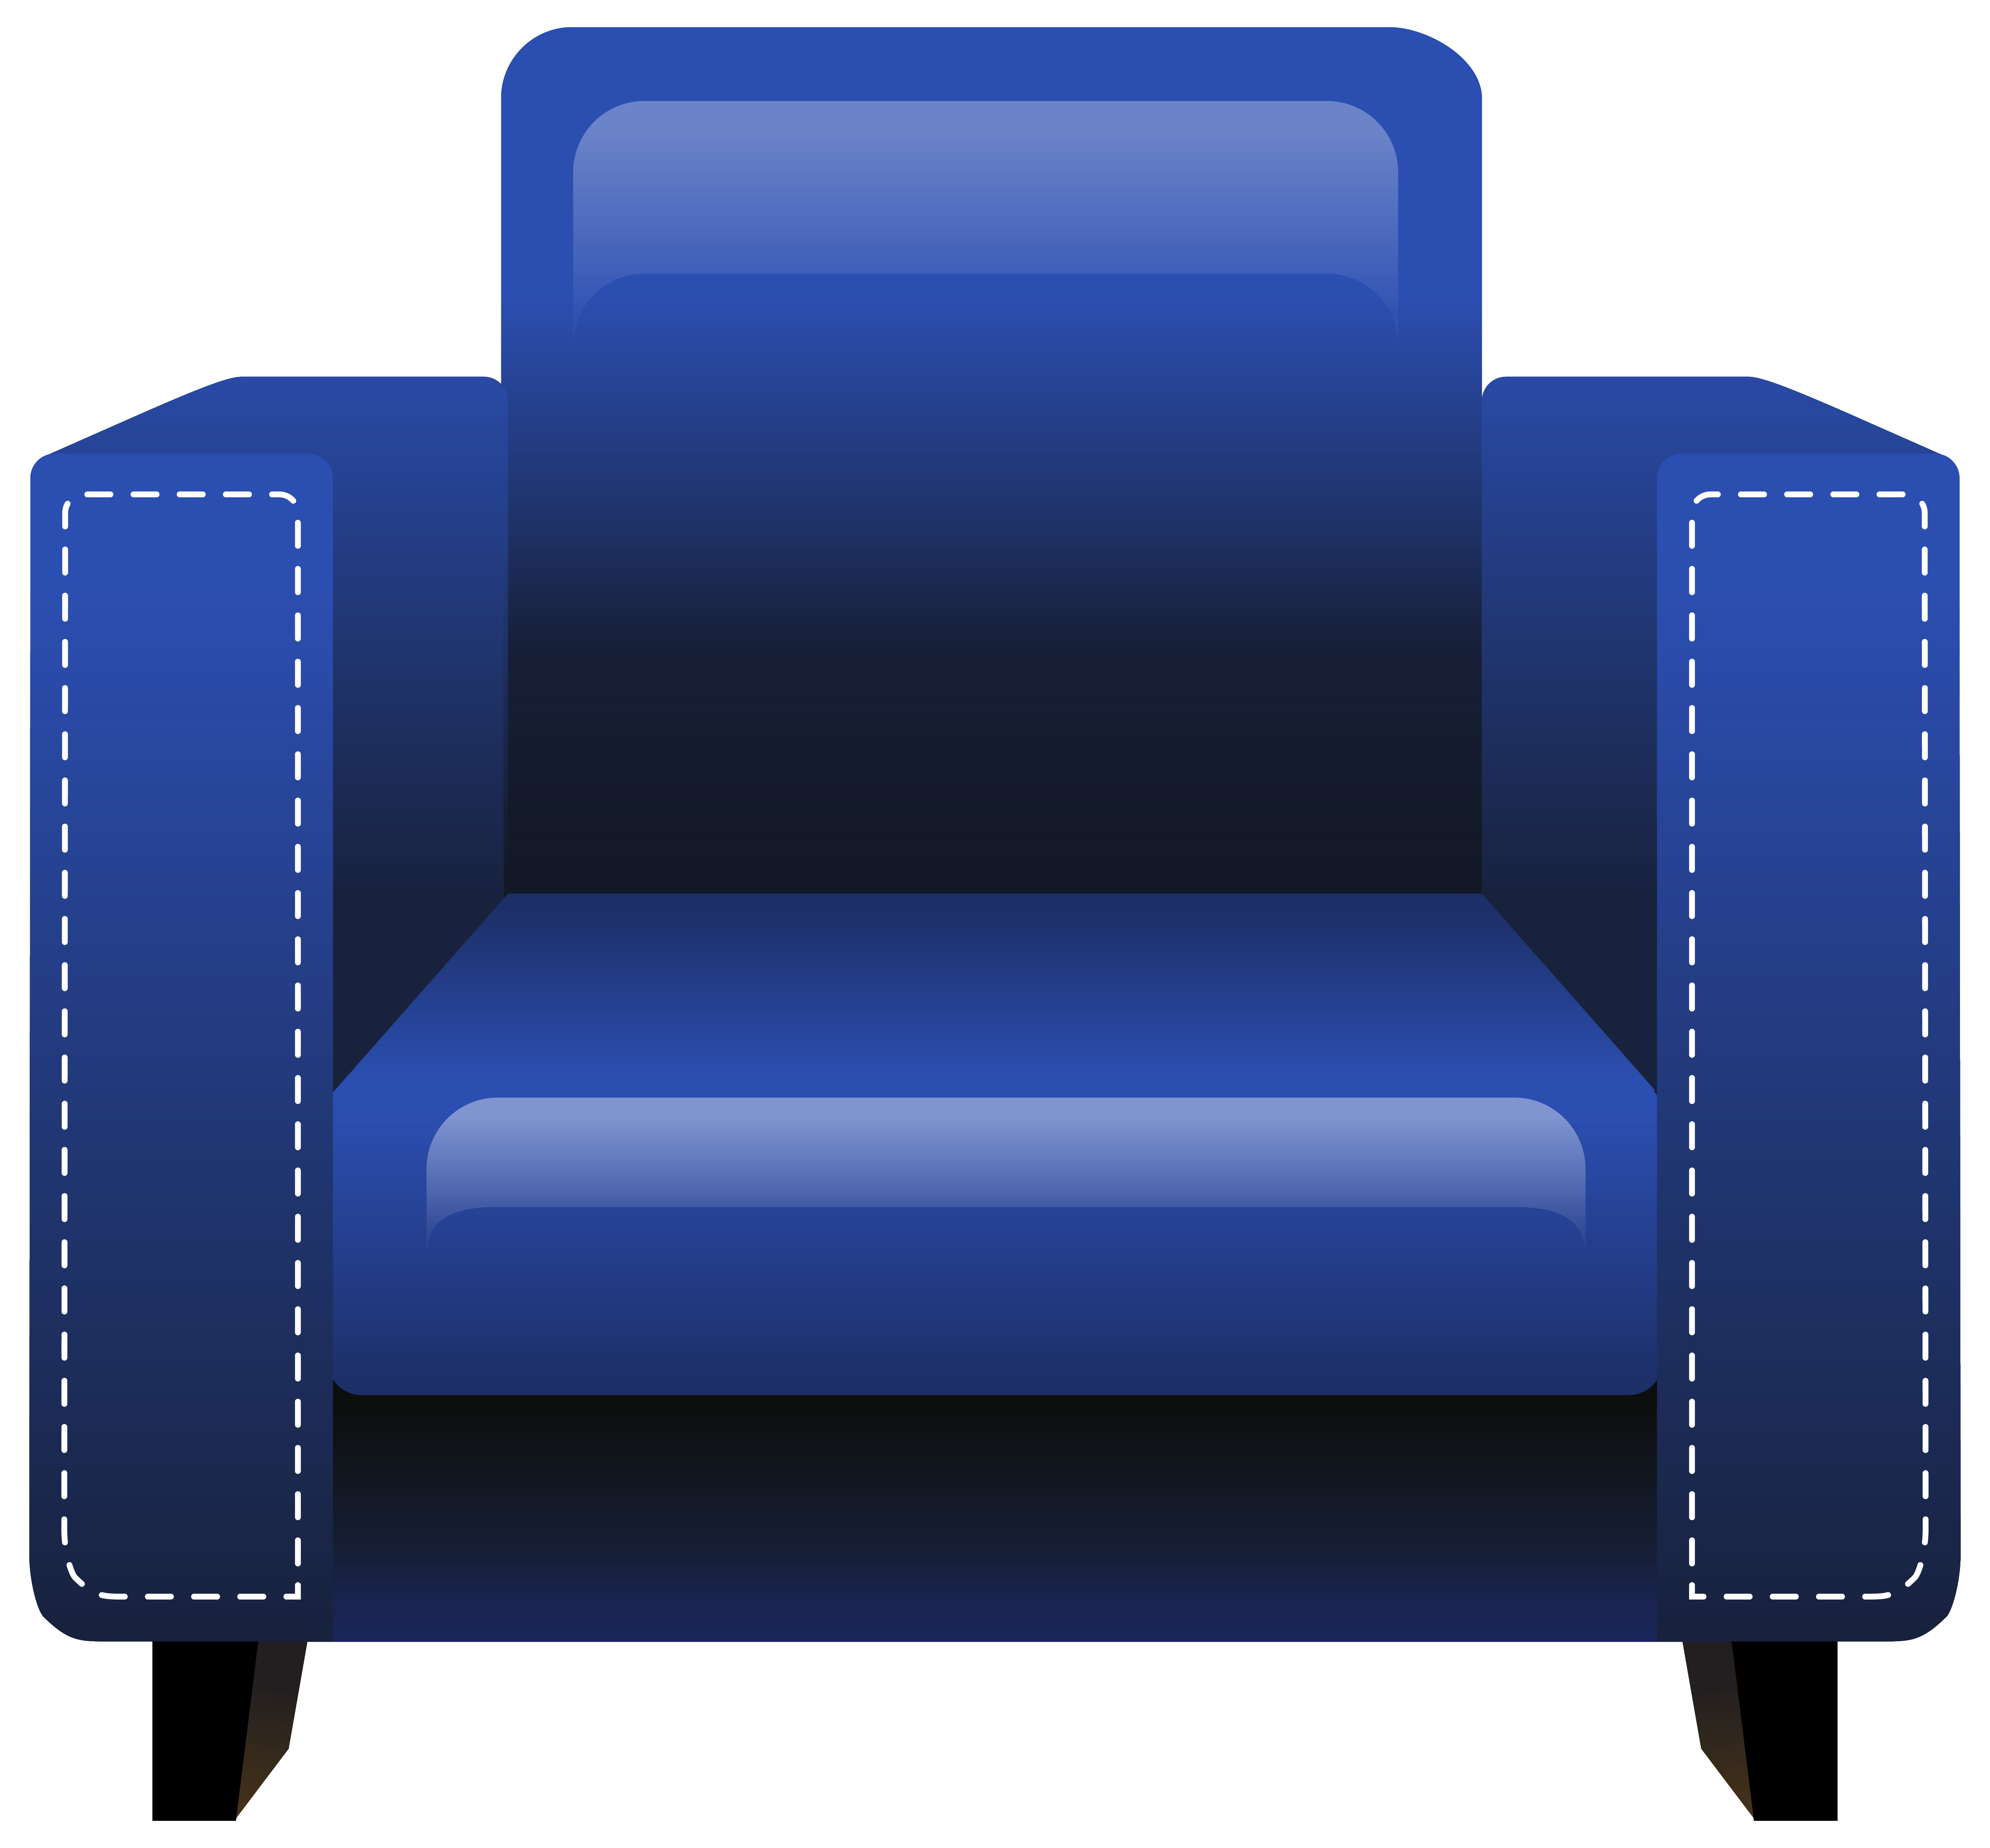 Blue armchair png image. Piano clipart chair